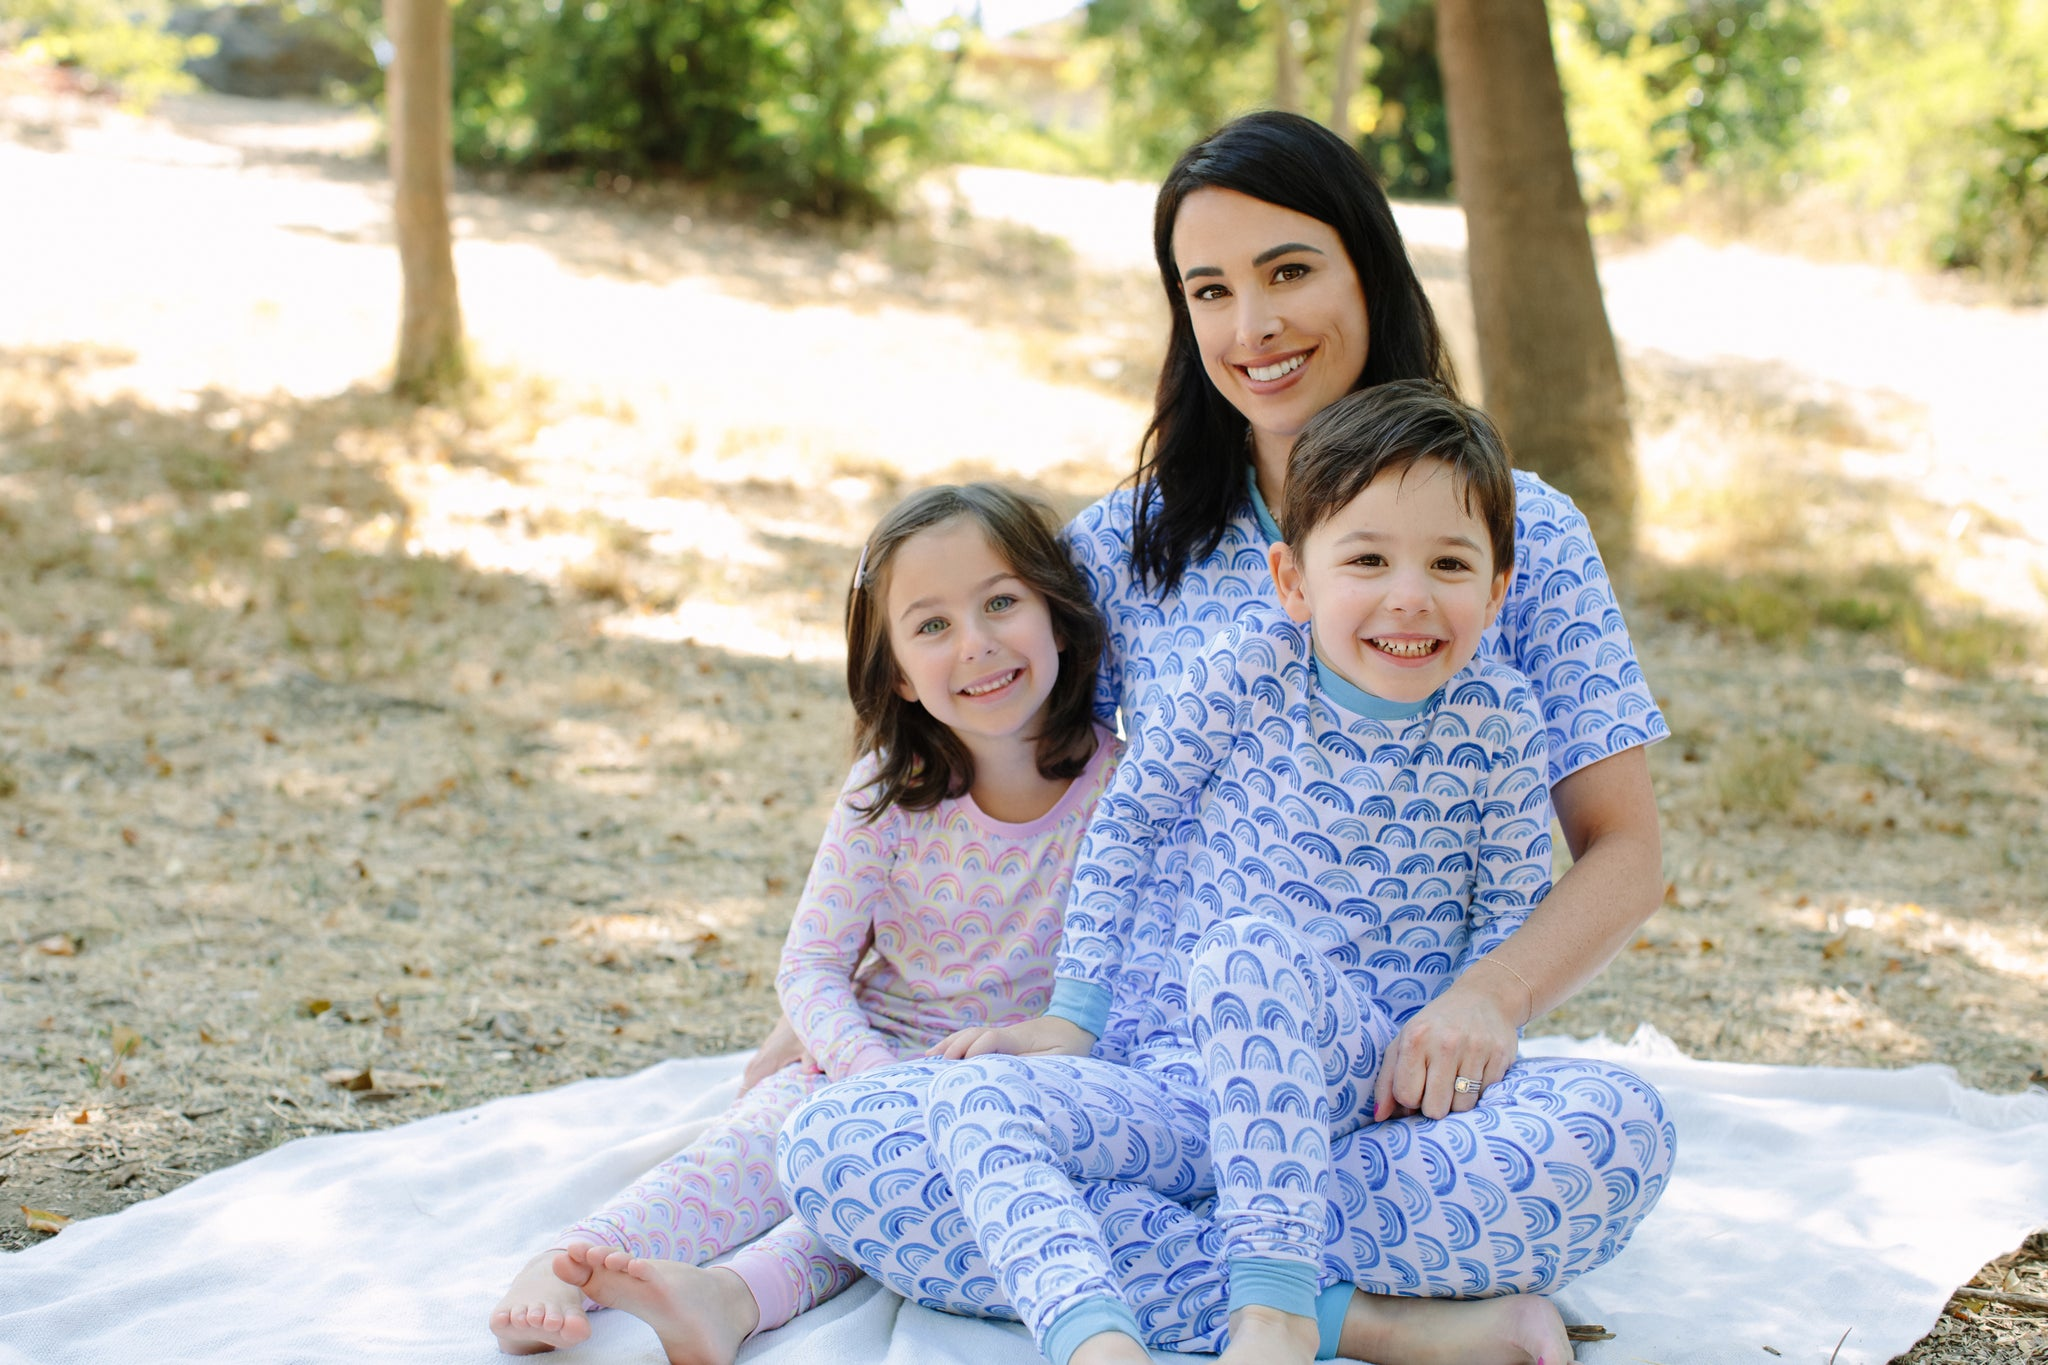 Little Sleepies founder with her kids